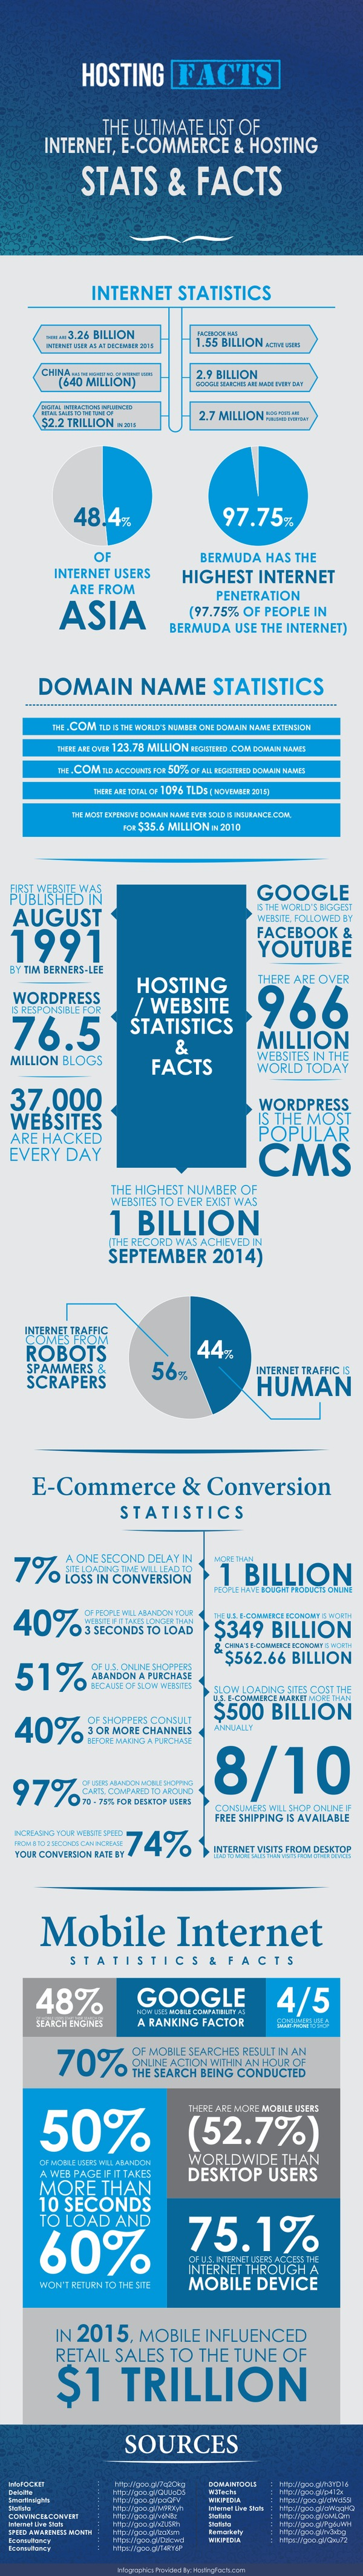 The Ultimate List of Internet, E-commerce & Hosting Stats & Facts